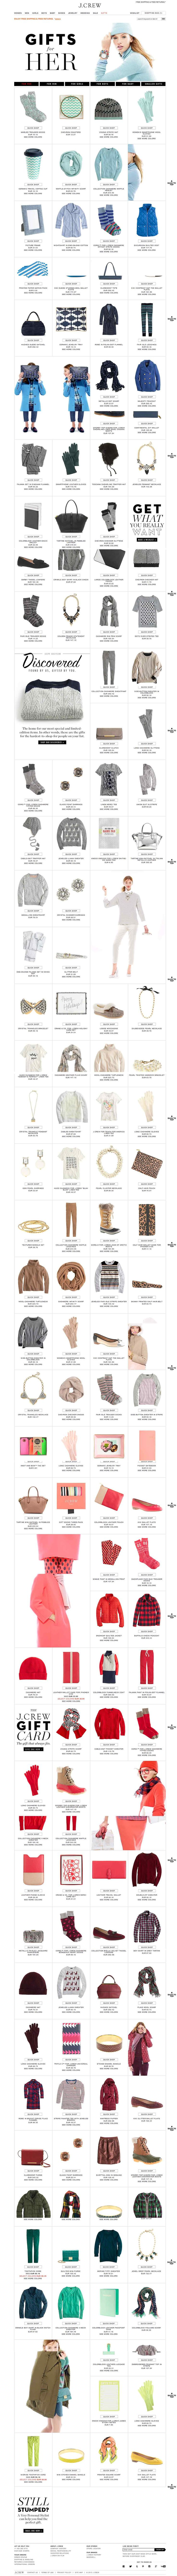 J.Crew - Gift Guide